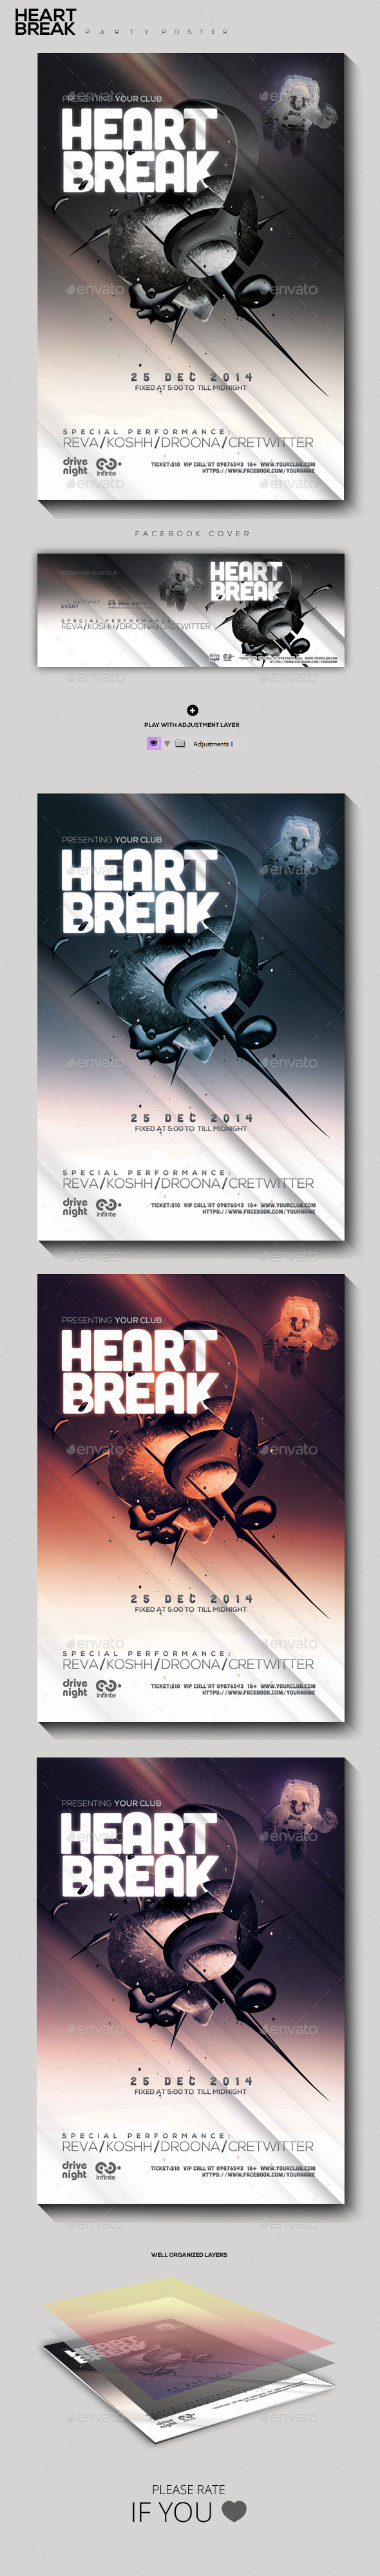 Heart Break Party Flyer - Clubs & Parties Events